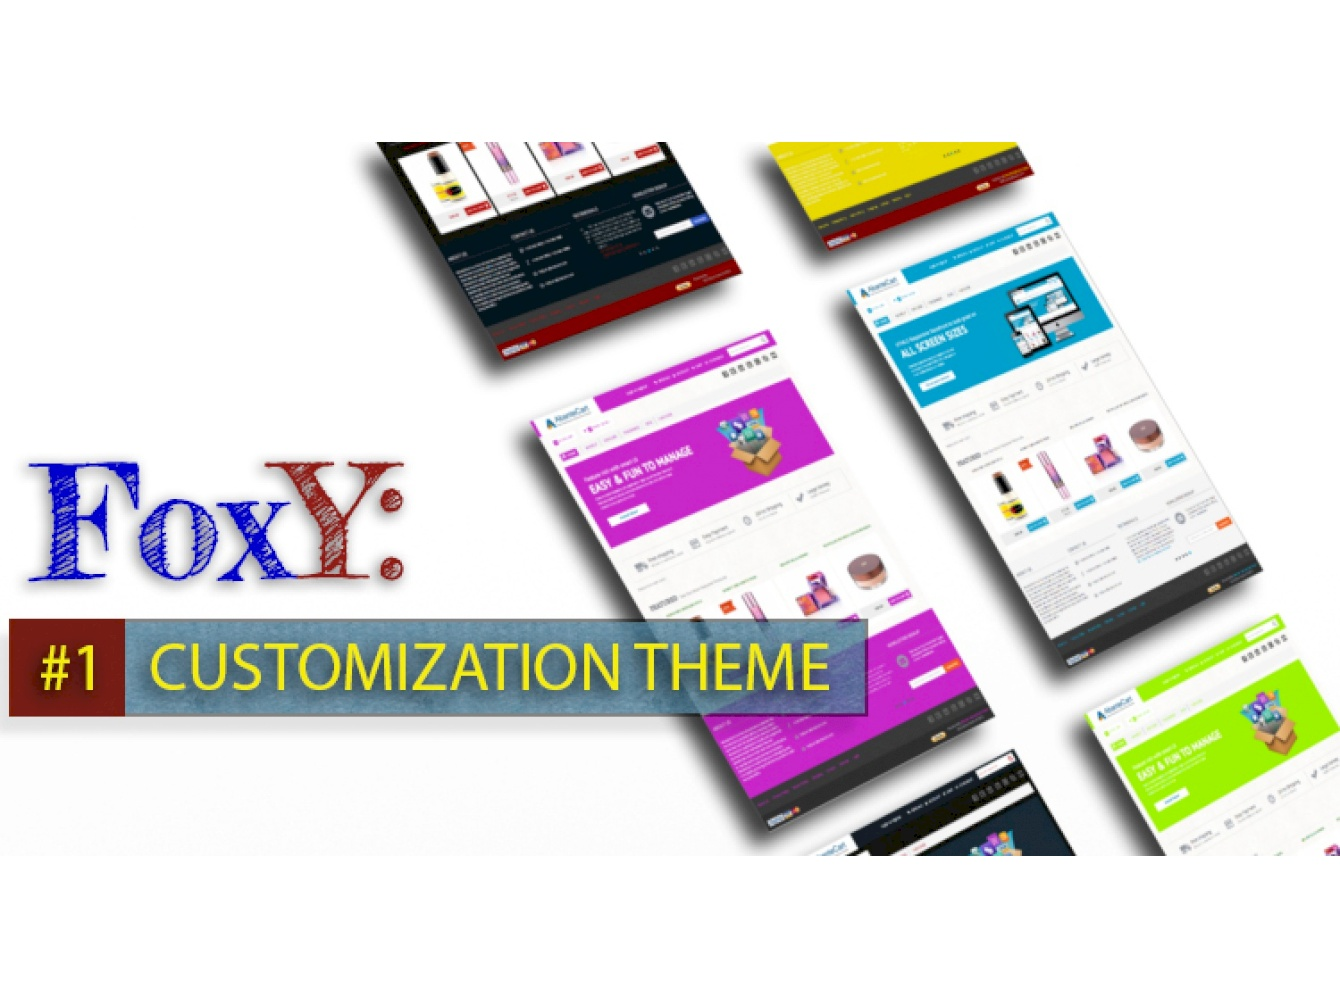 FoxY Customization AbanteCart Theme